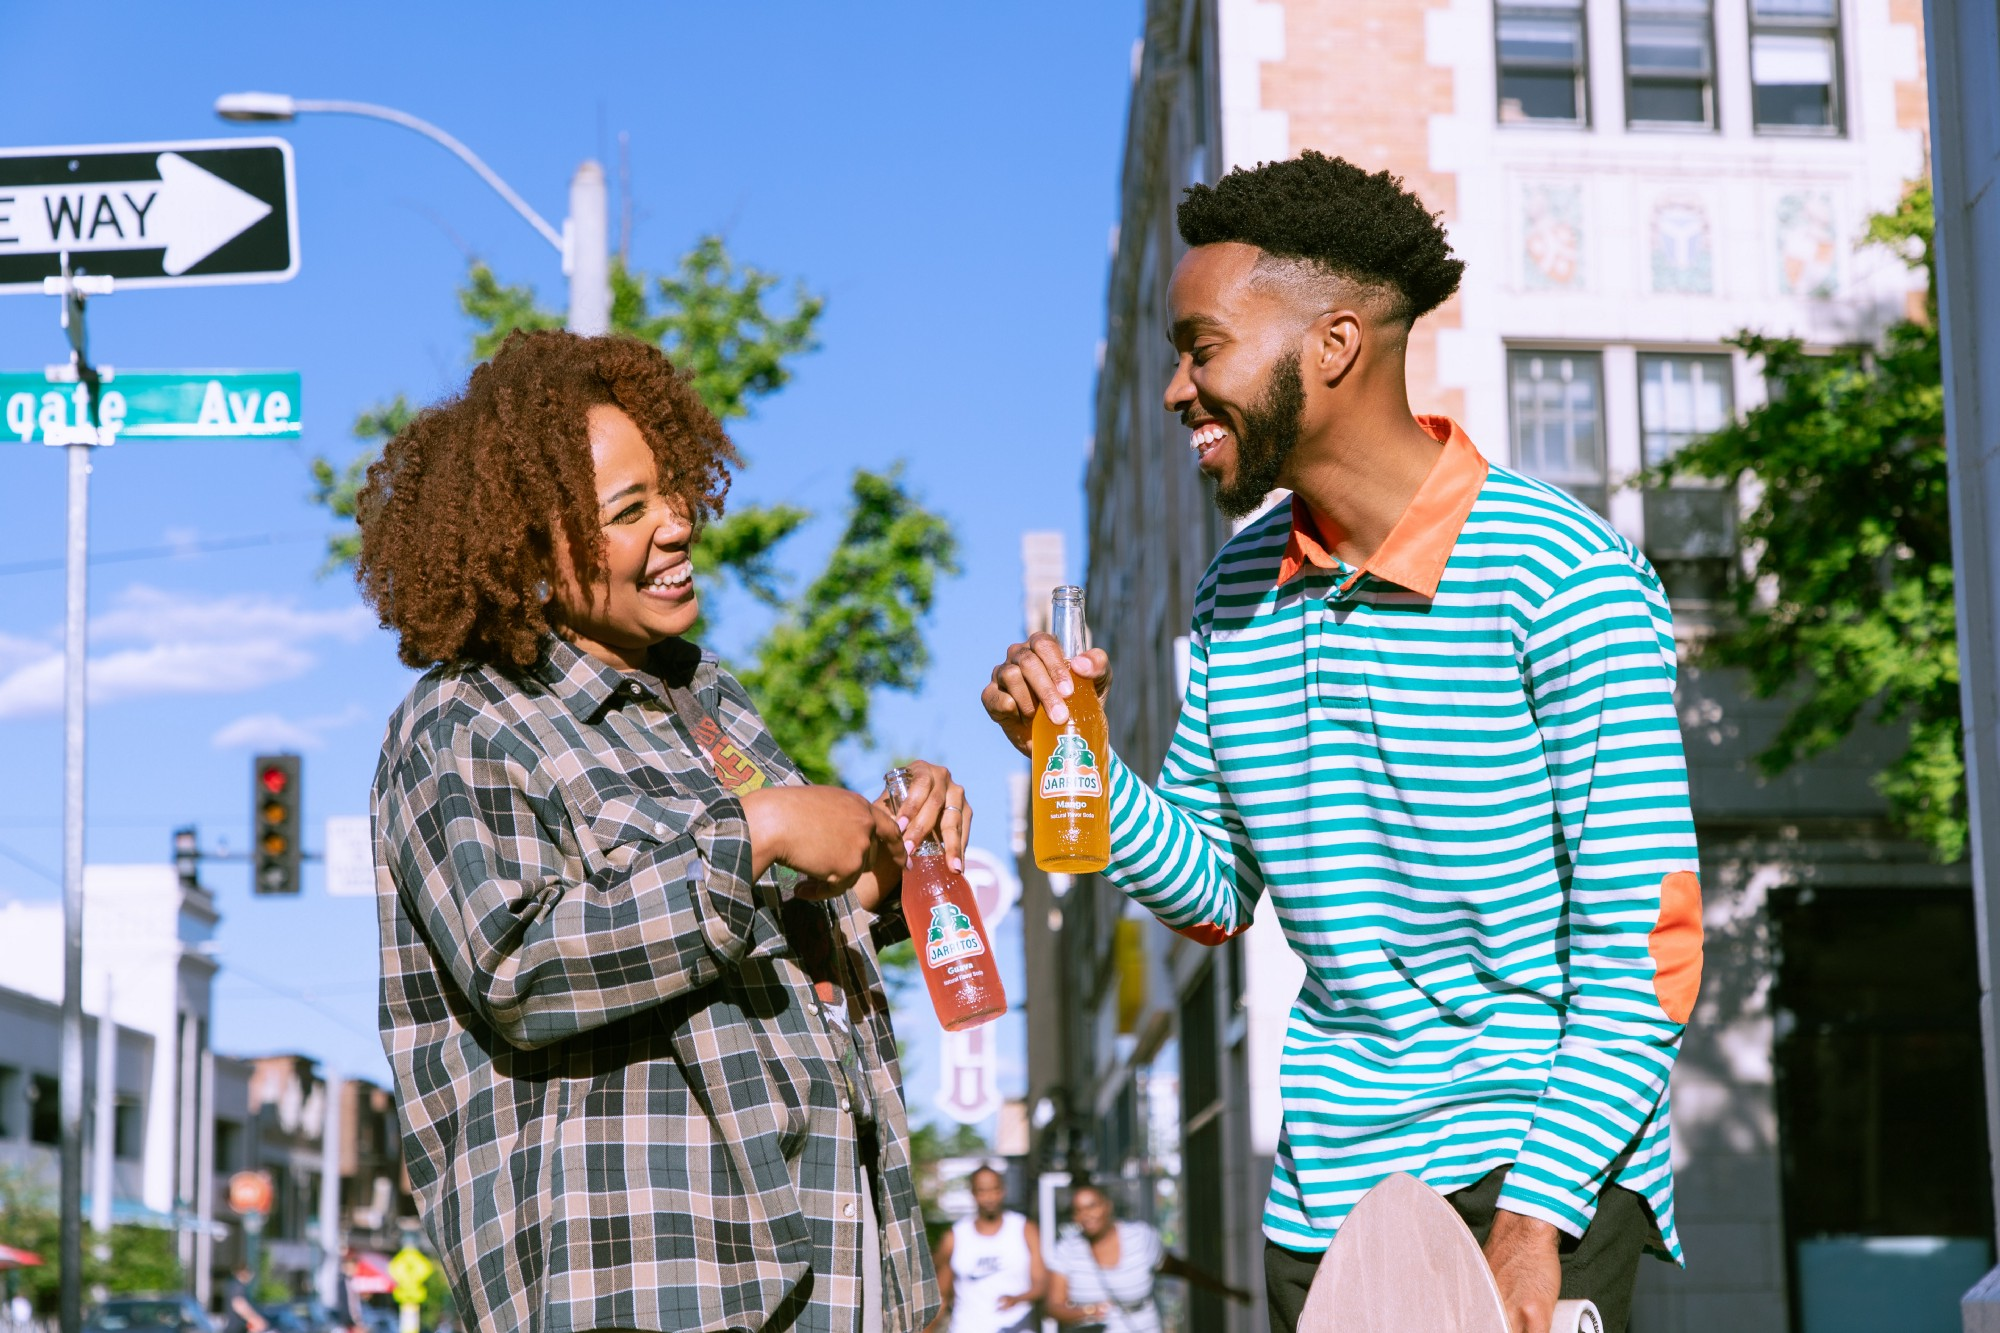 a man and a woman cheering on the street